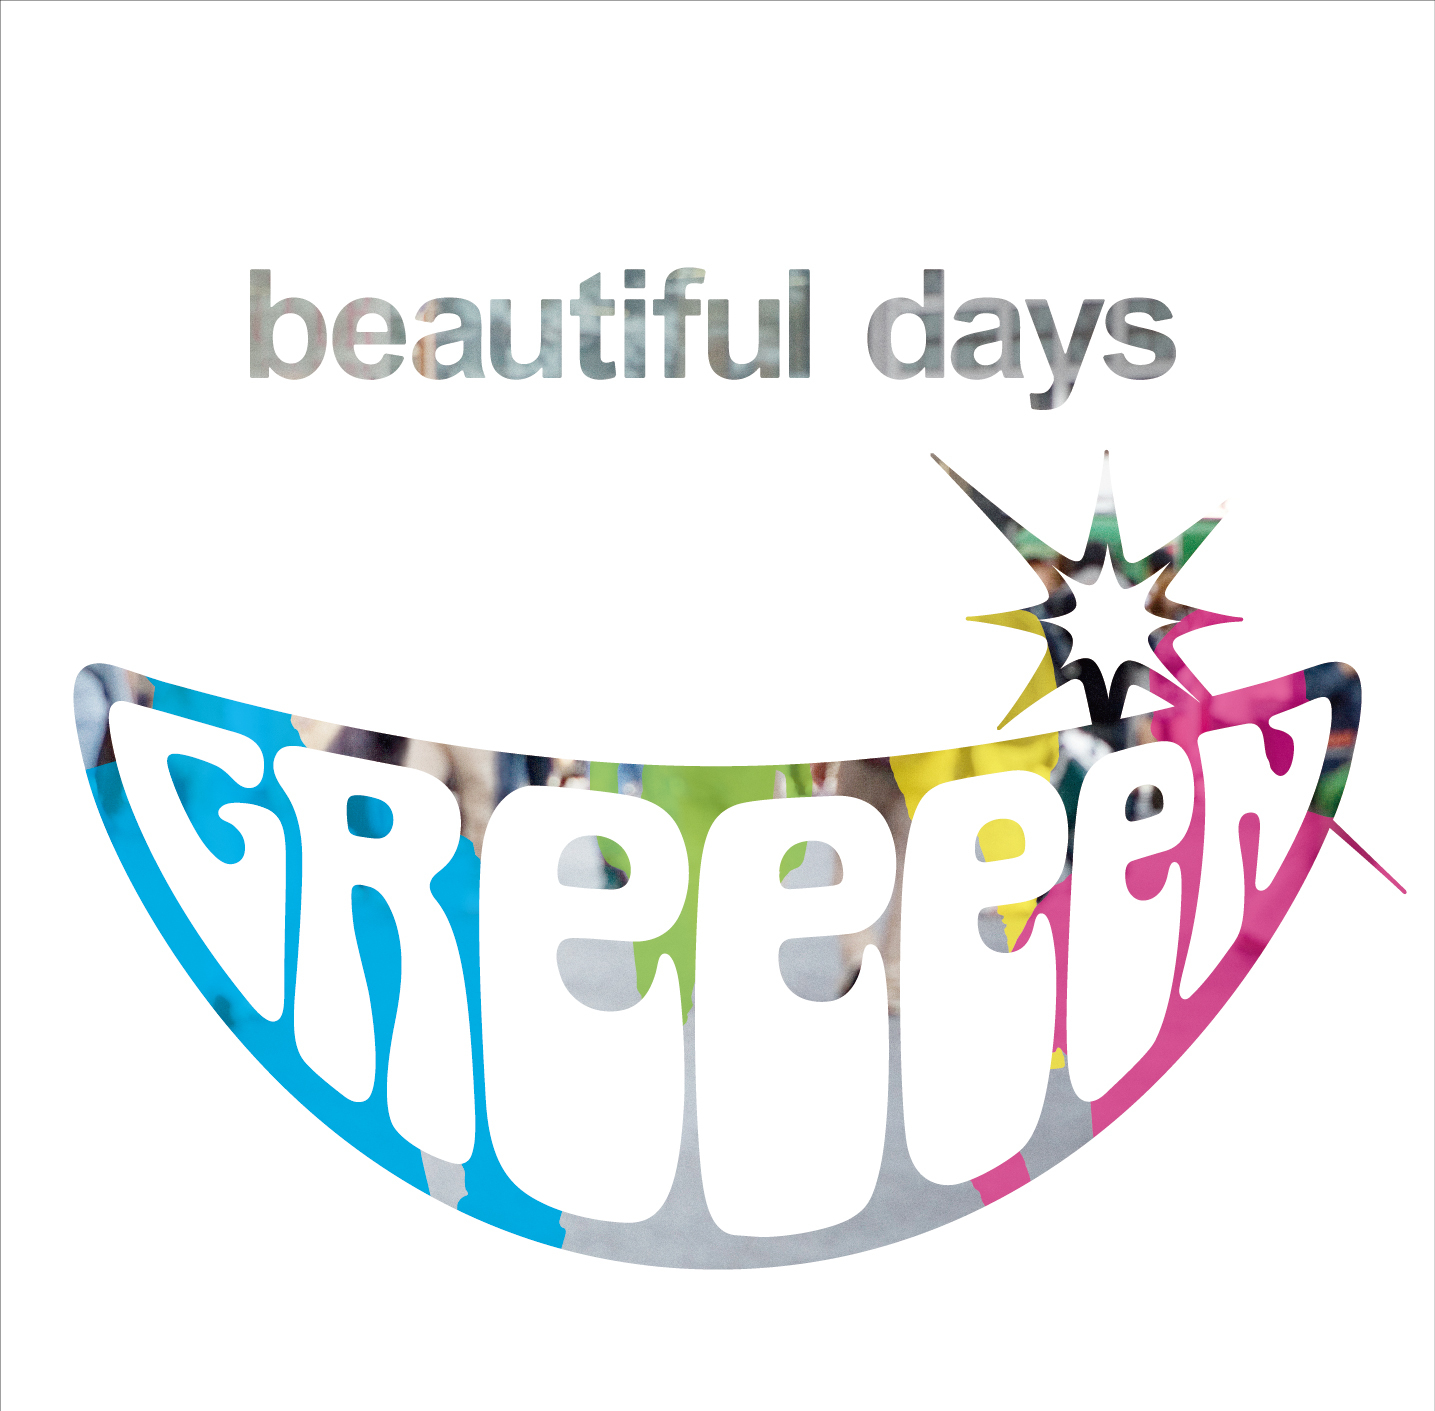 「beautiful days」